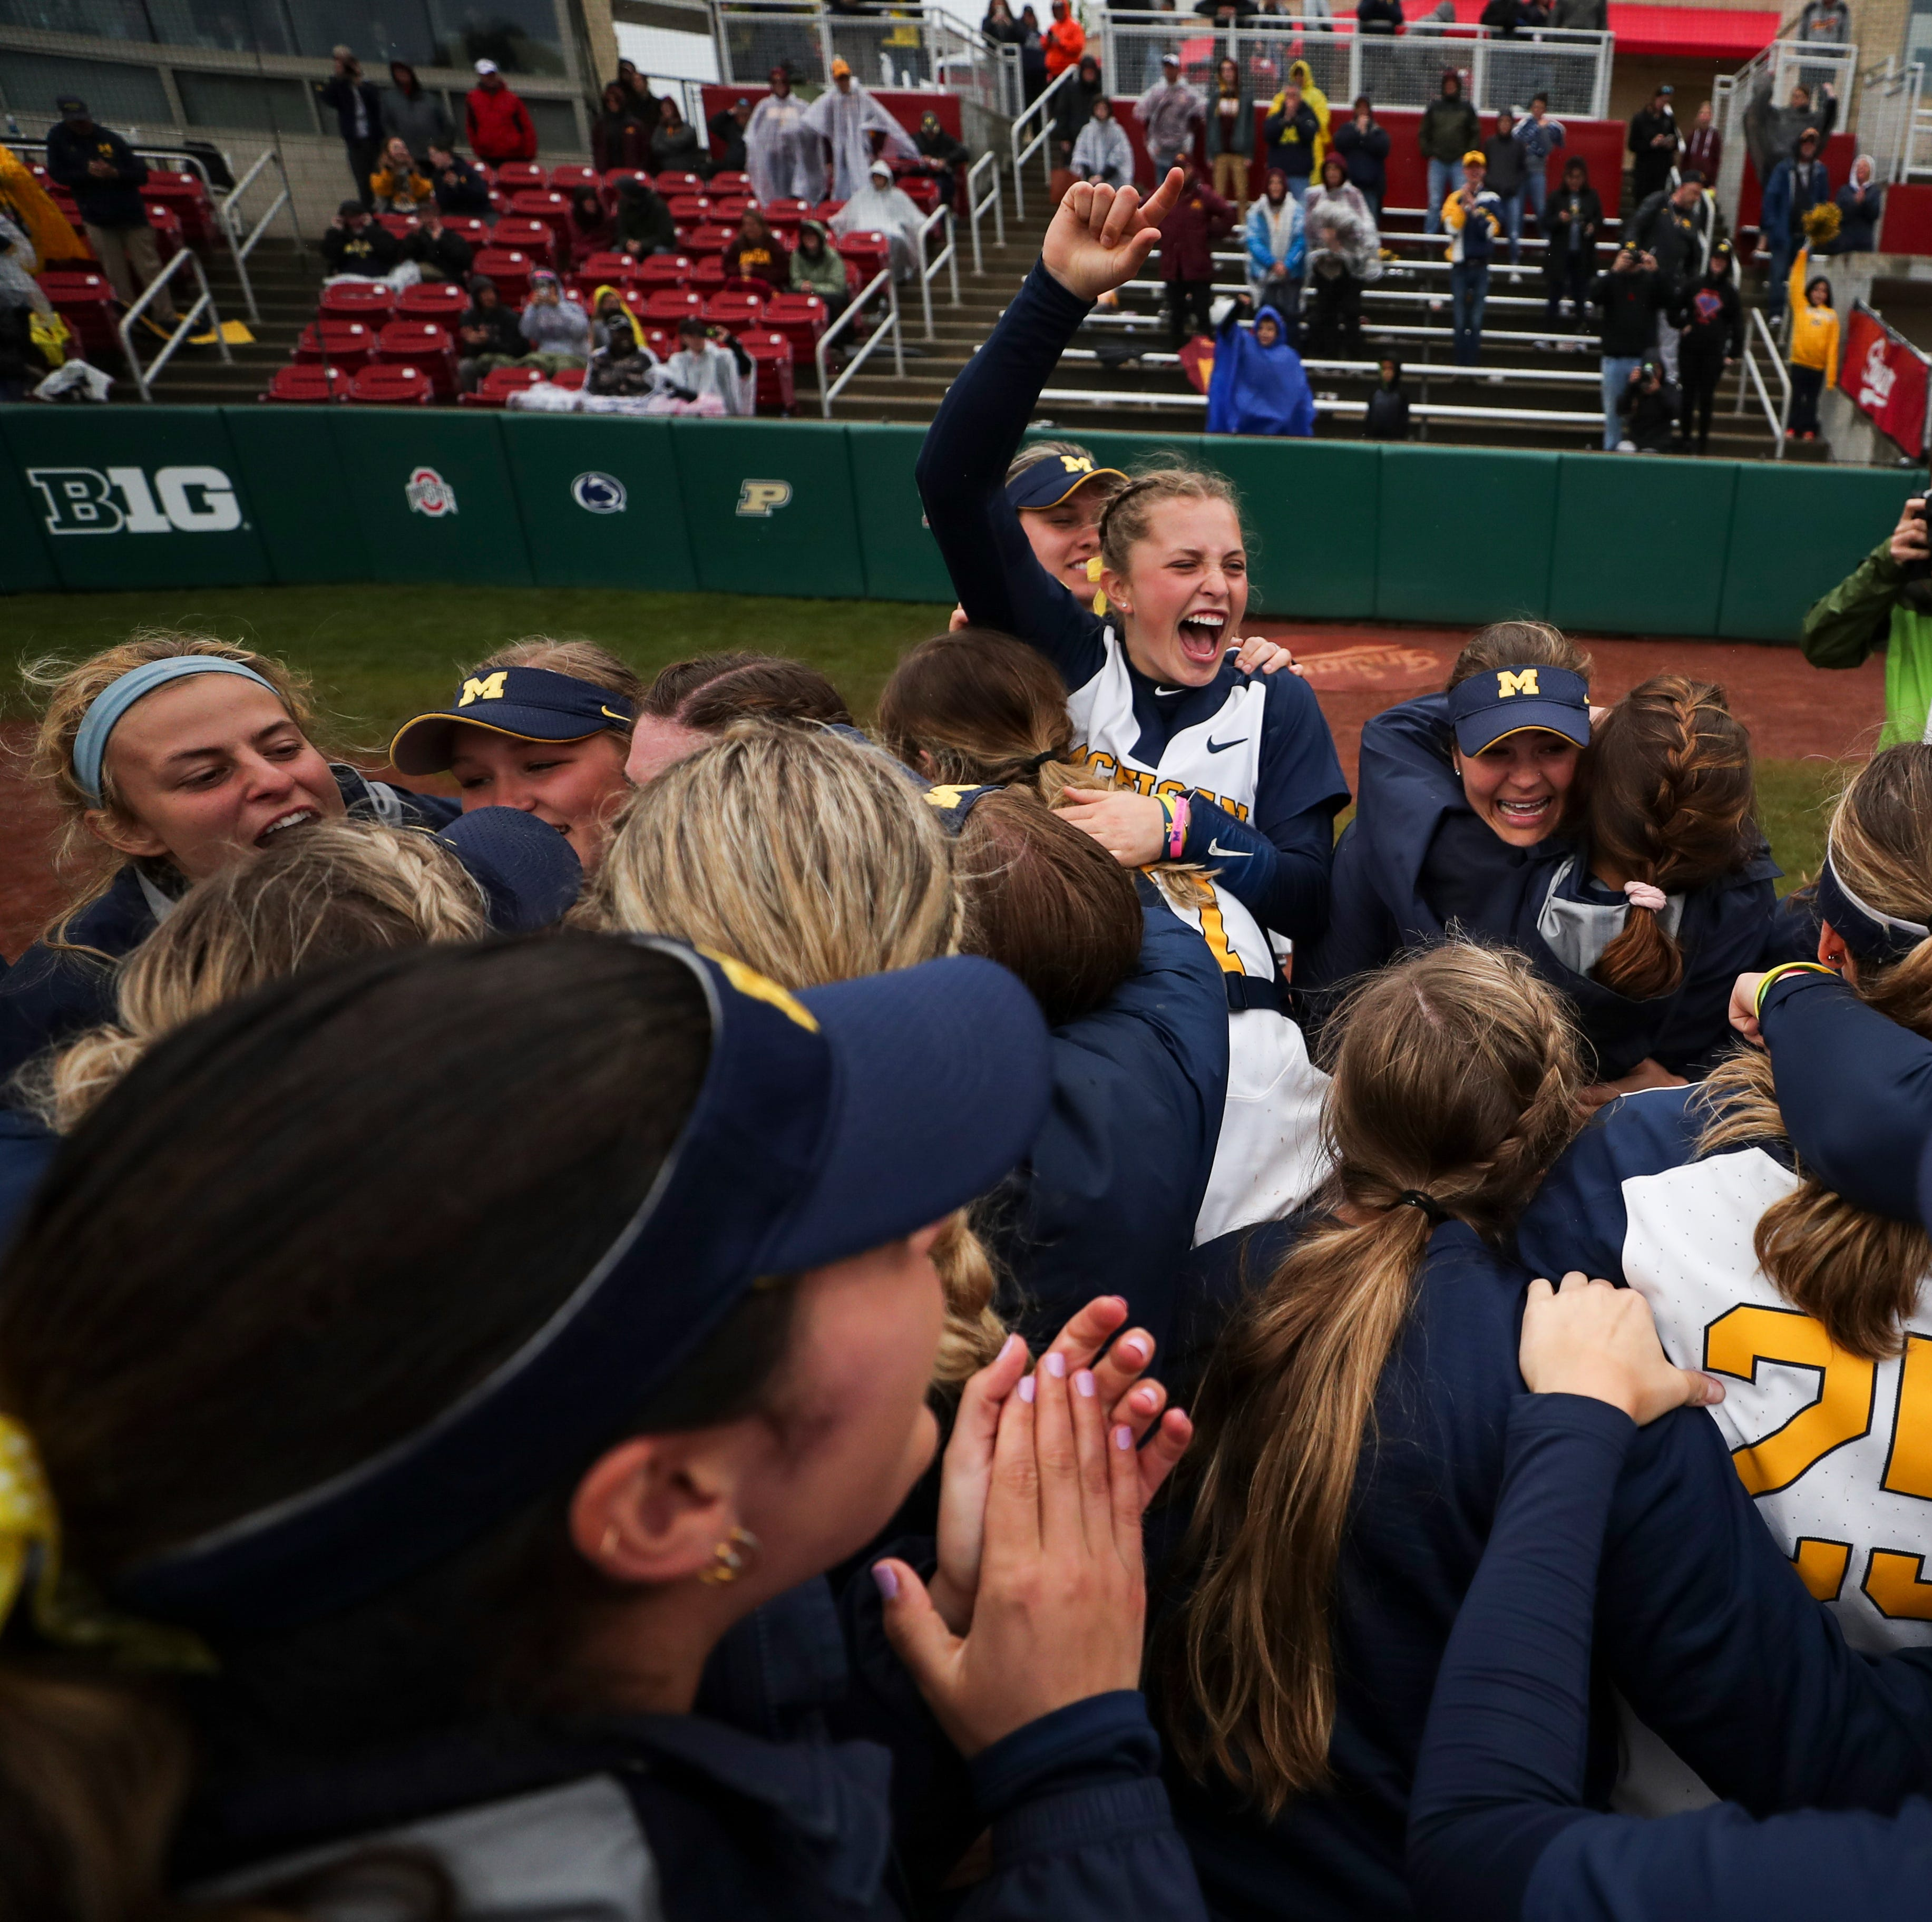 Michigan softball picks up first win in NCAA regional, run rules SFU